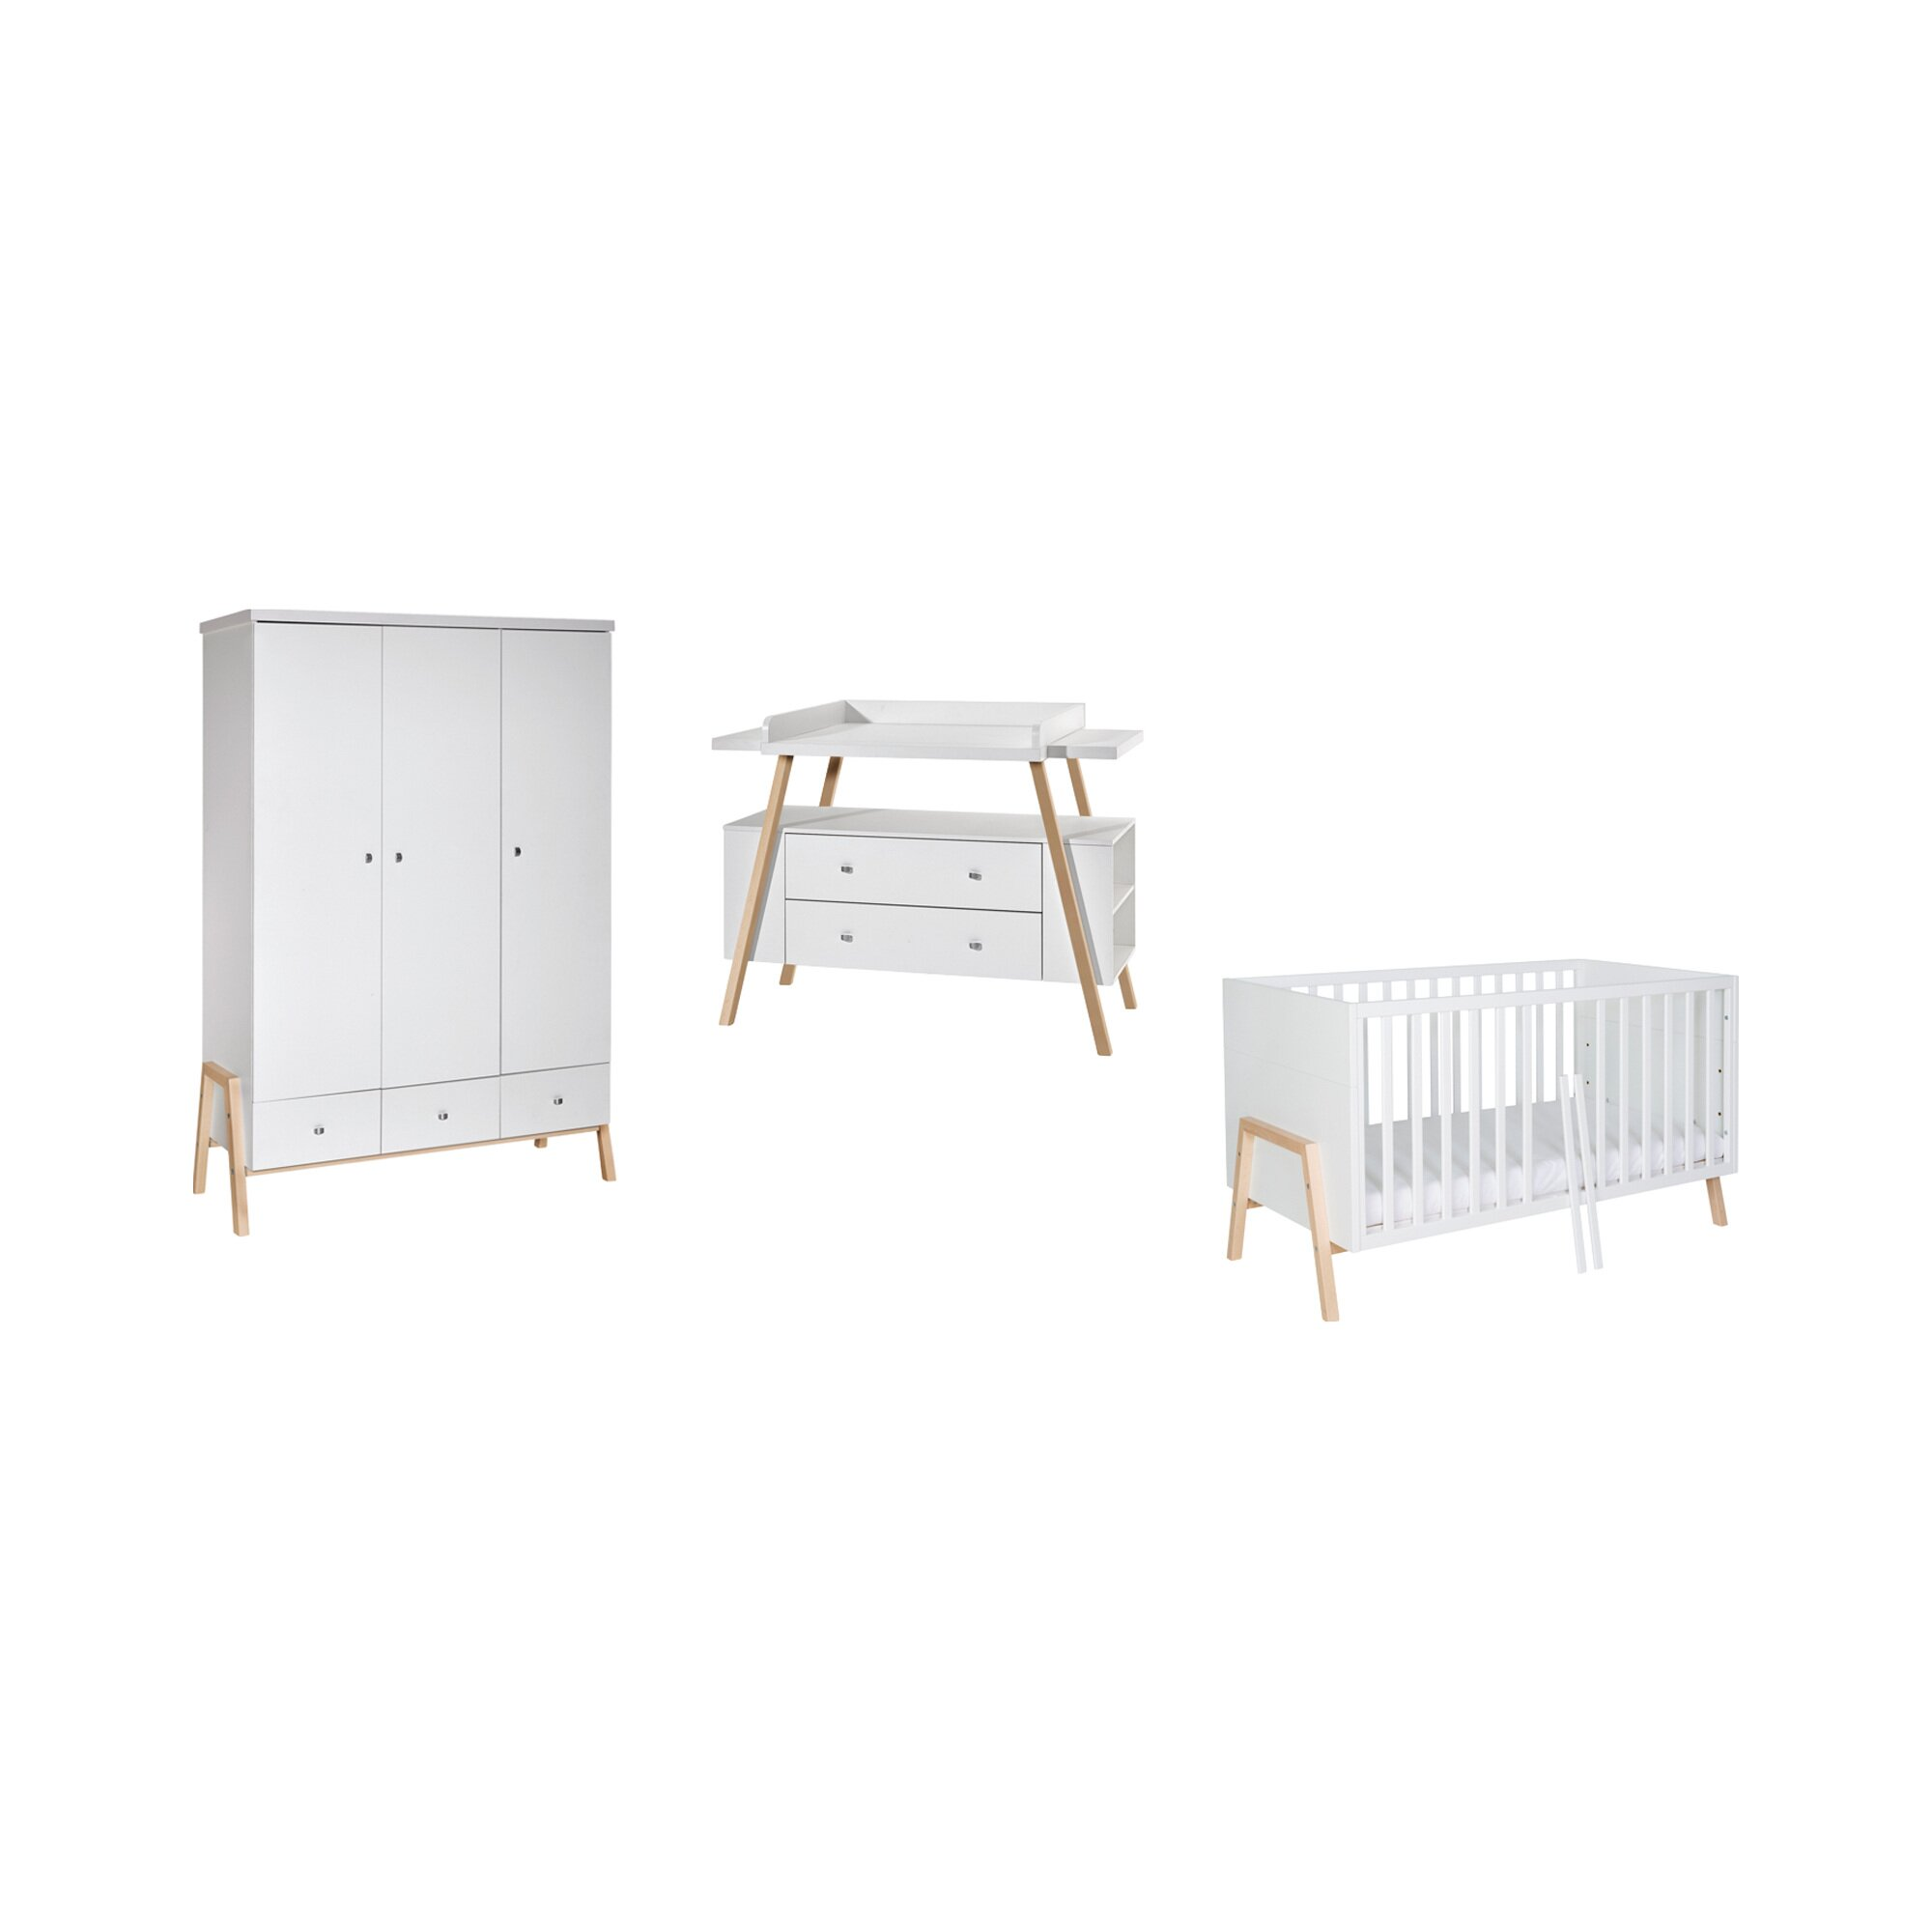 schardt-3-tlg-babyzimmer-holly-nature